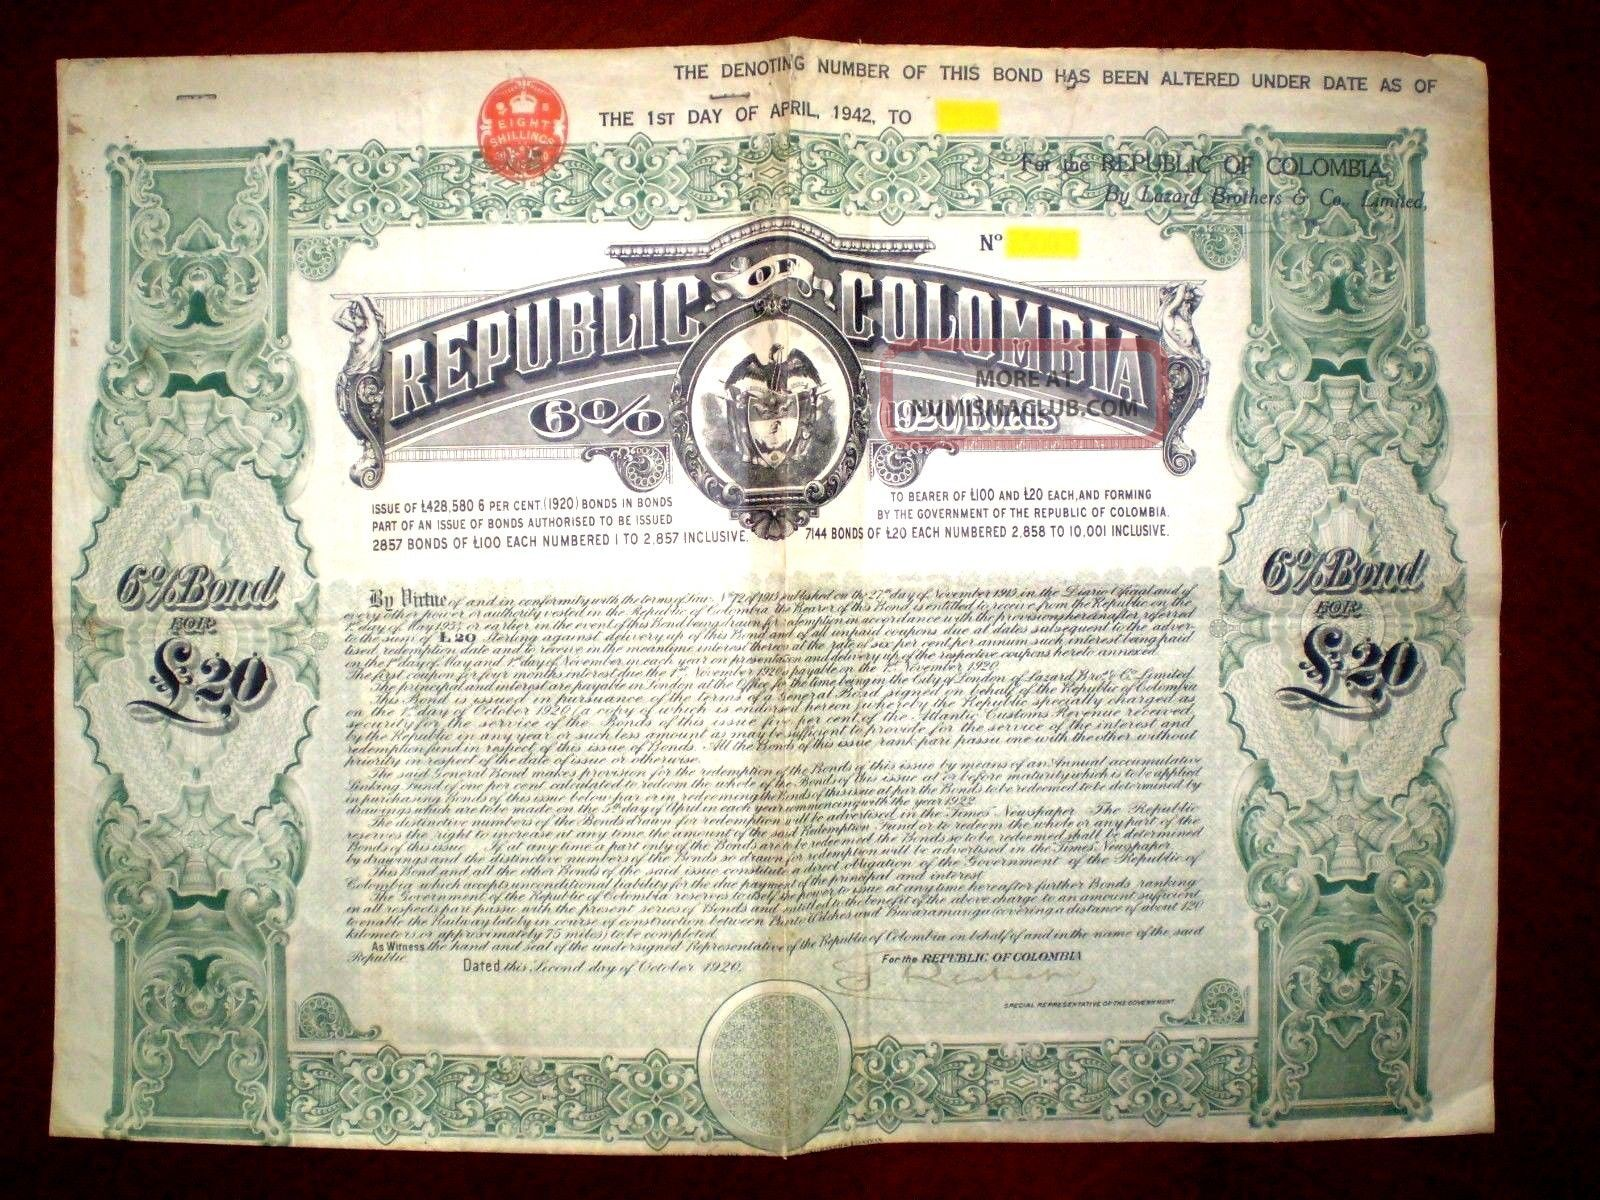 Republic Of Colombia 20 Pounds 6 1920 Bond World photo